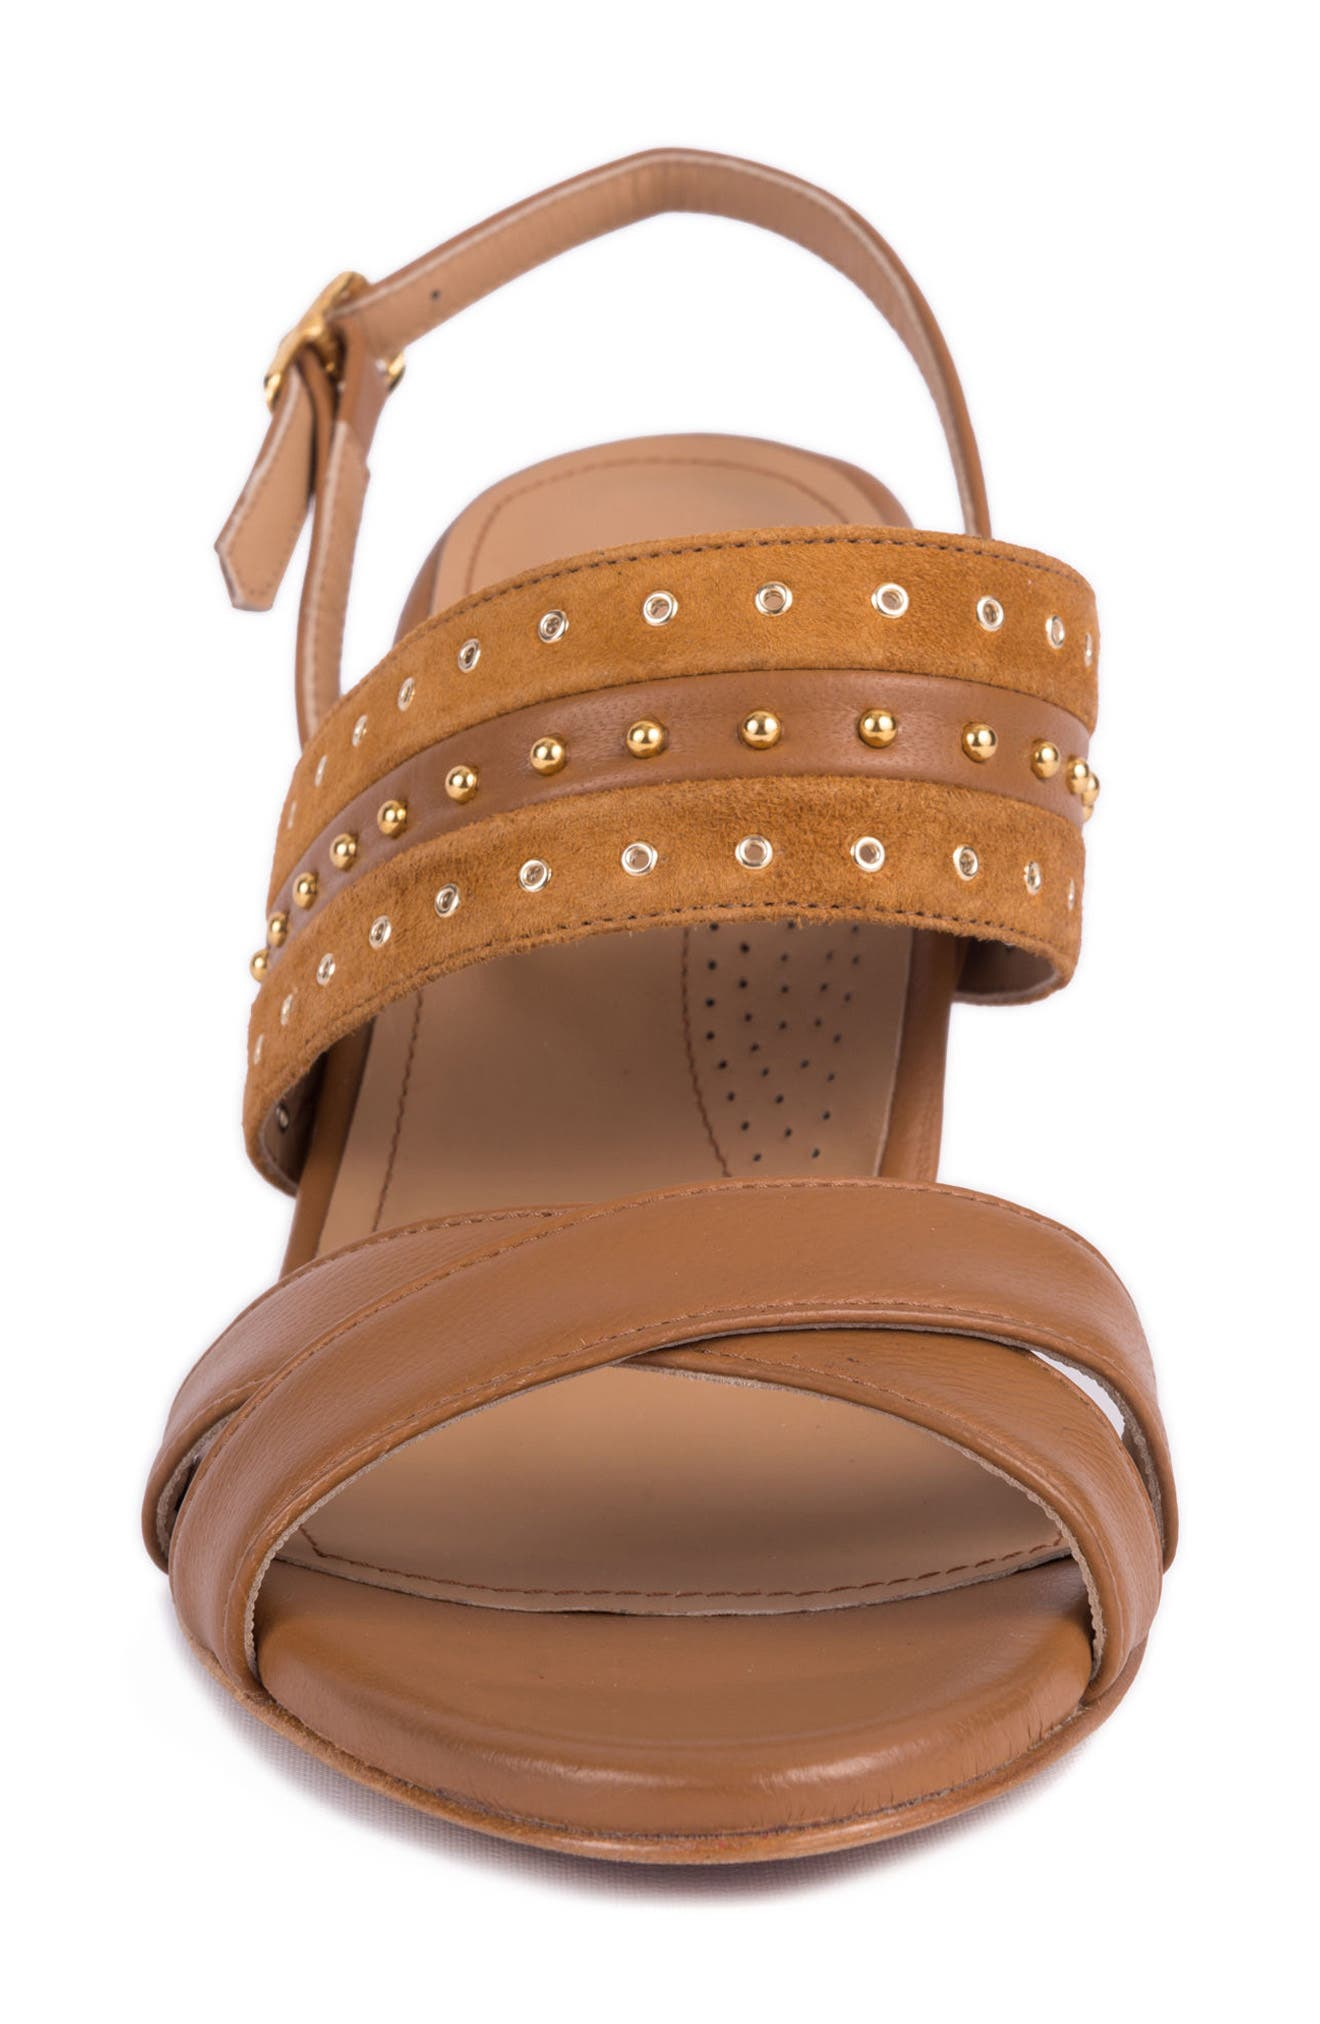 Soldani Studded Slingback Sandal,                             Alternate thumbnail 4, color,                             Miele